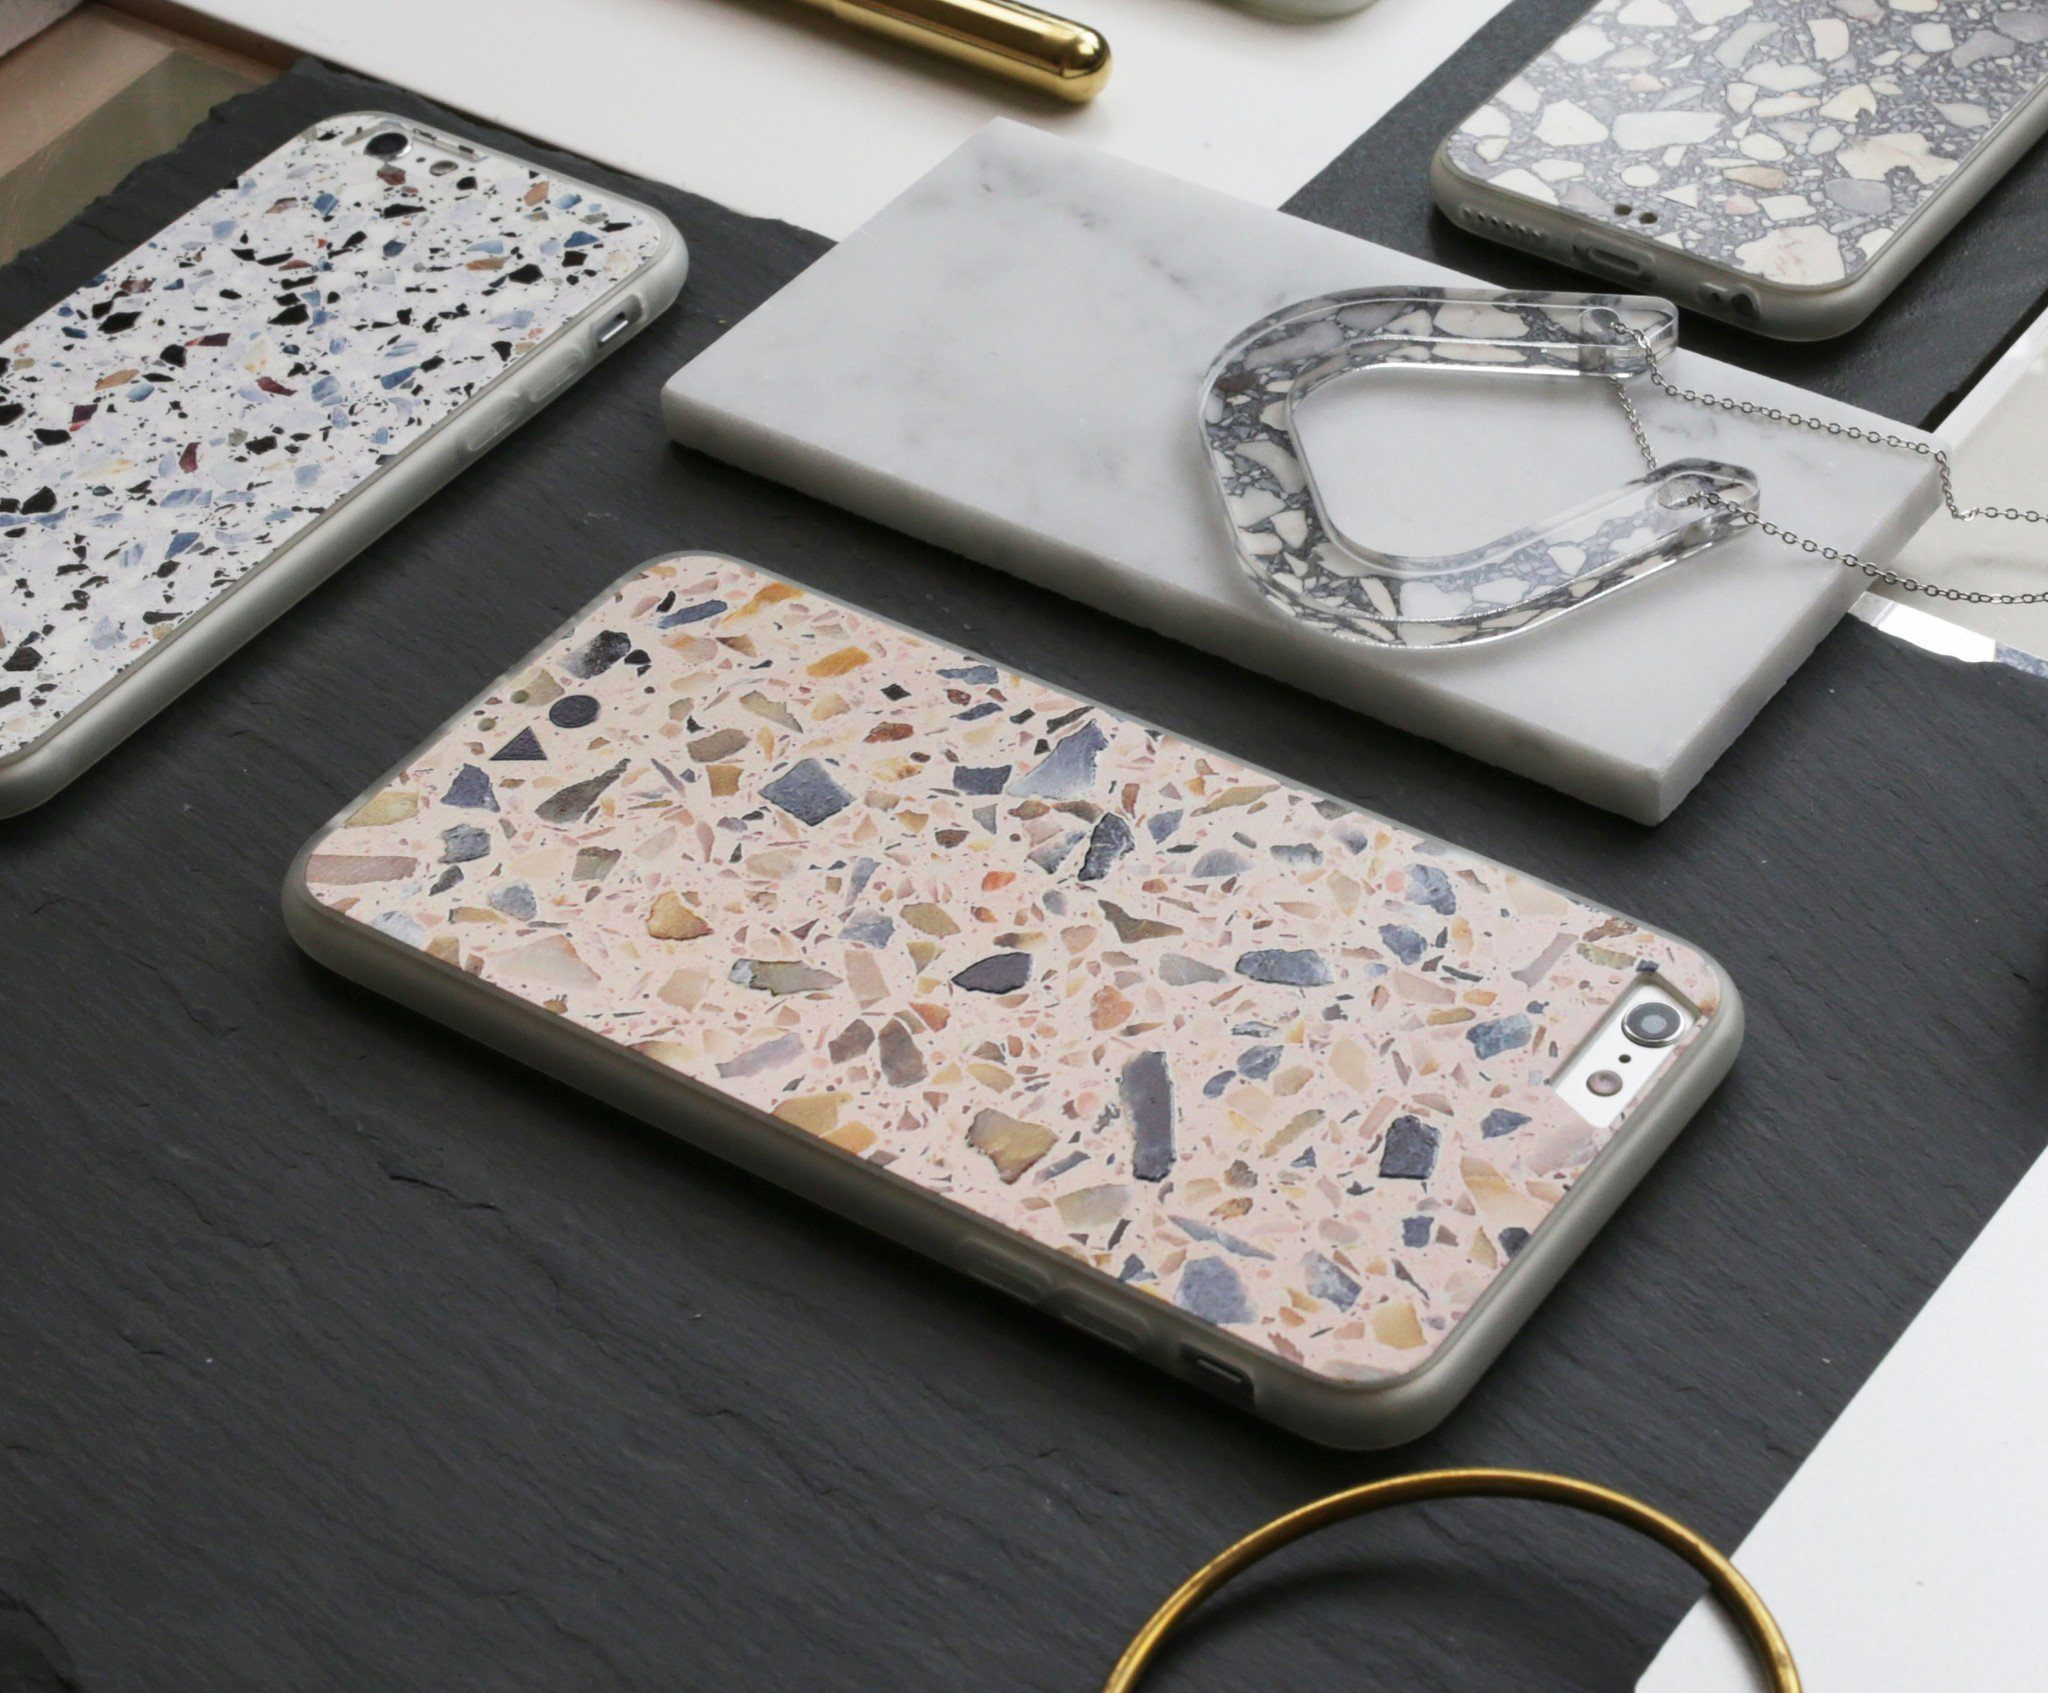 Blush Terrazzo iPhone Case - iPhone 6s Plus - Phone Cases - FormMaker - Naiise